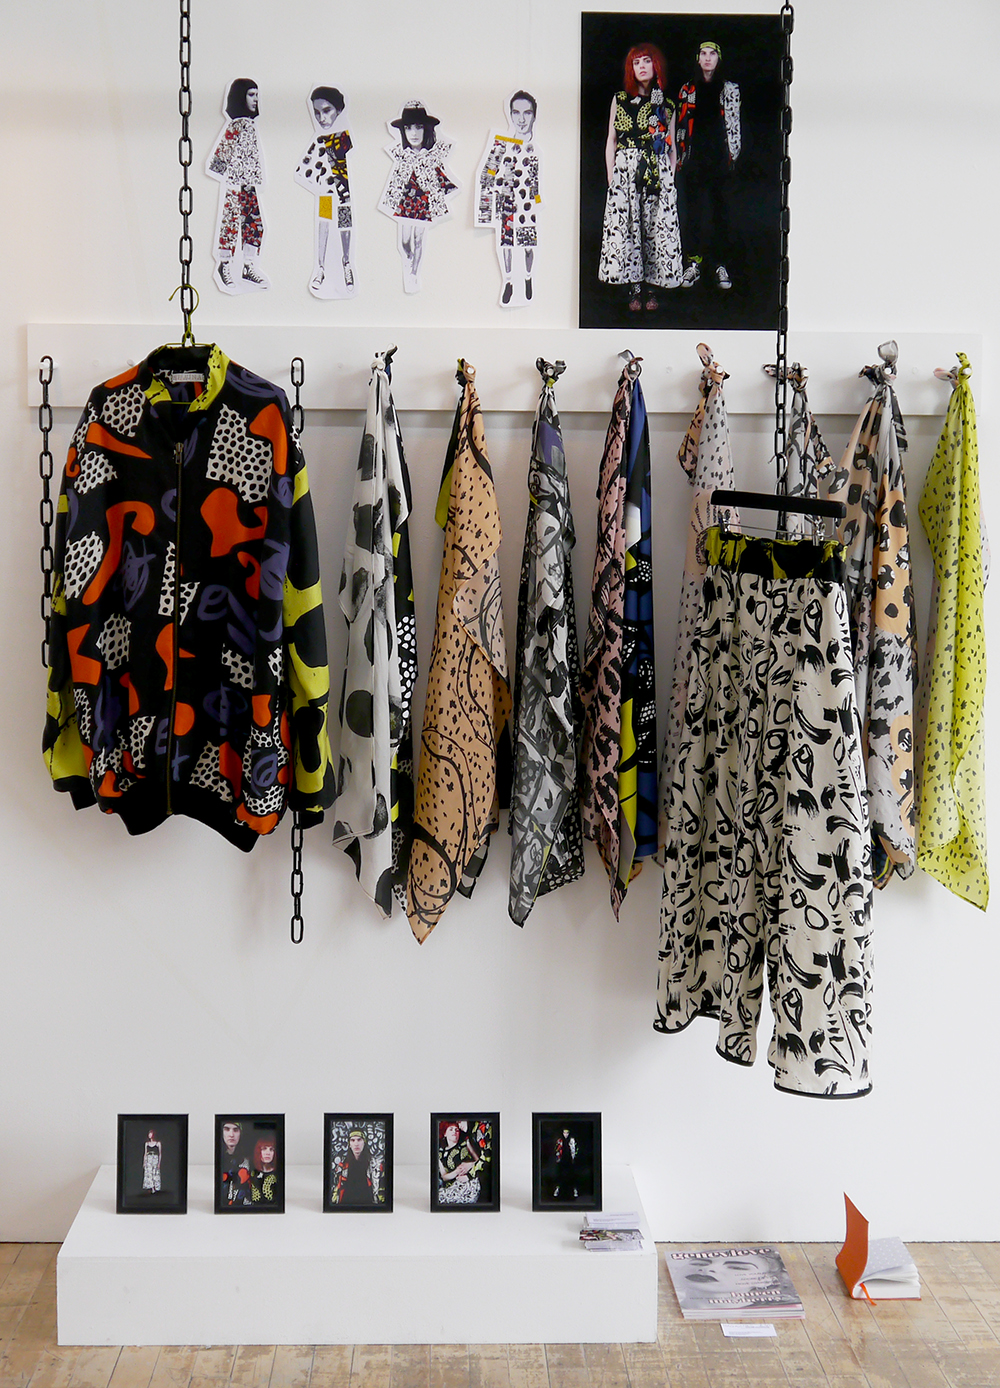 DJCAD, Duncan of Jordanstone College of Art and Design, degree show, Dundee, degree show 2015, #djcaddegreeshow, #djcaddegreeshow15, textile design, printed fabric, Shauna McGregor